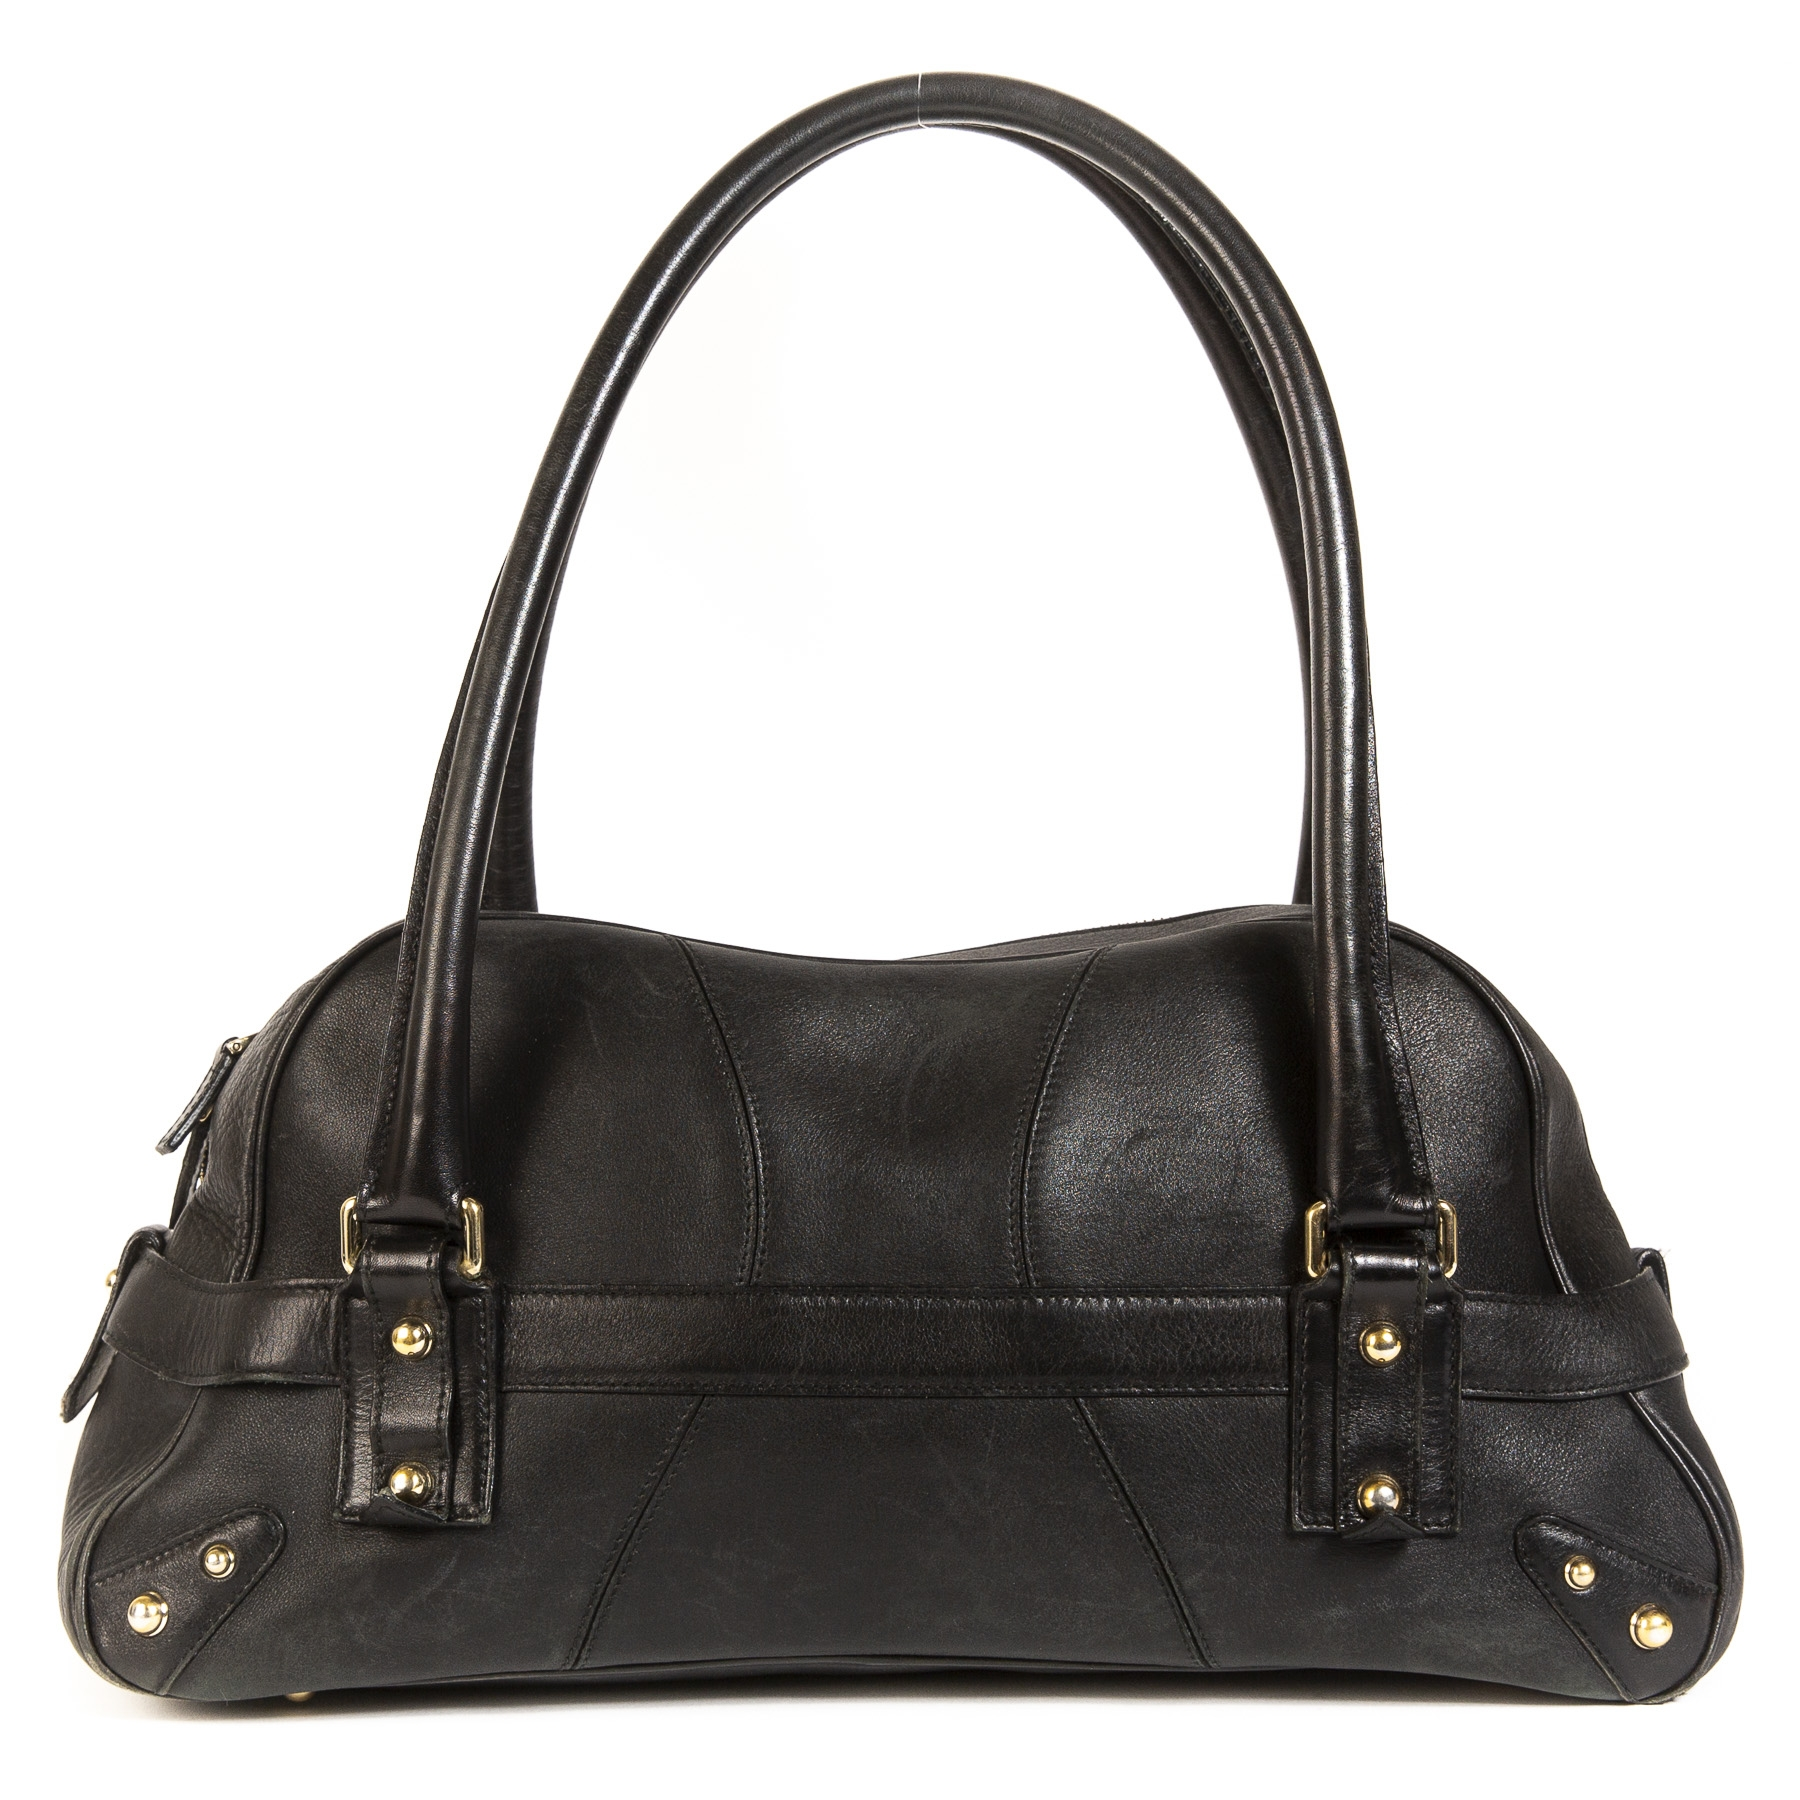 shop safe onlnie Gucci Black Horsebit Leather Satchel Bag